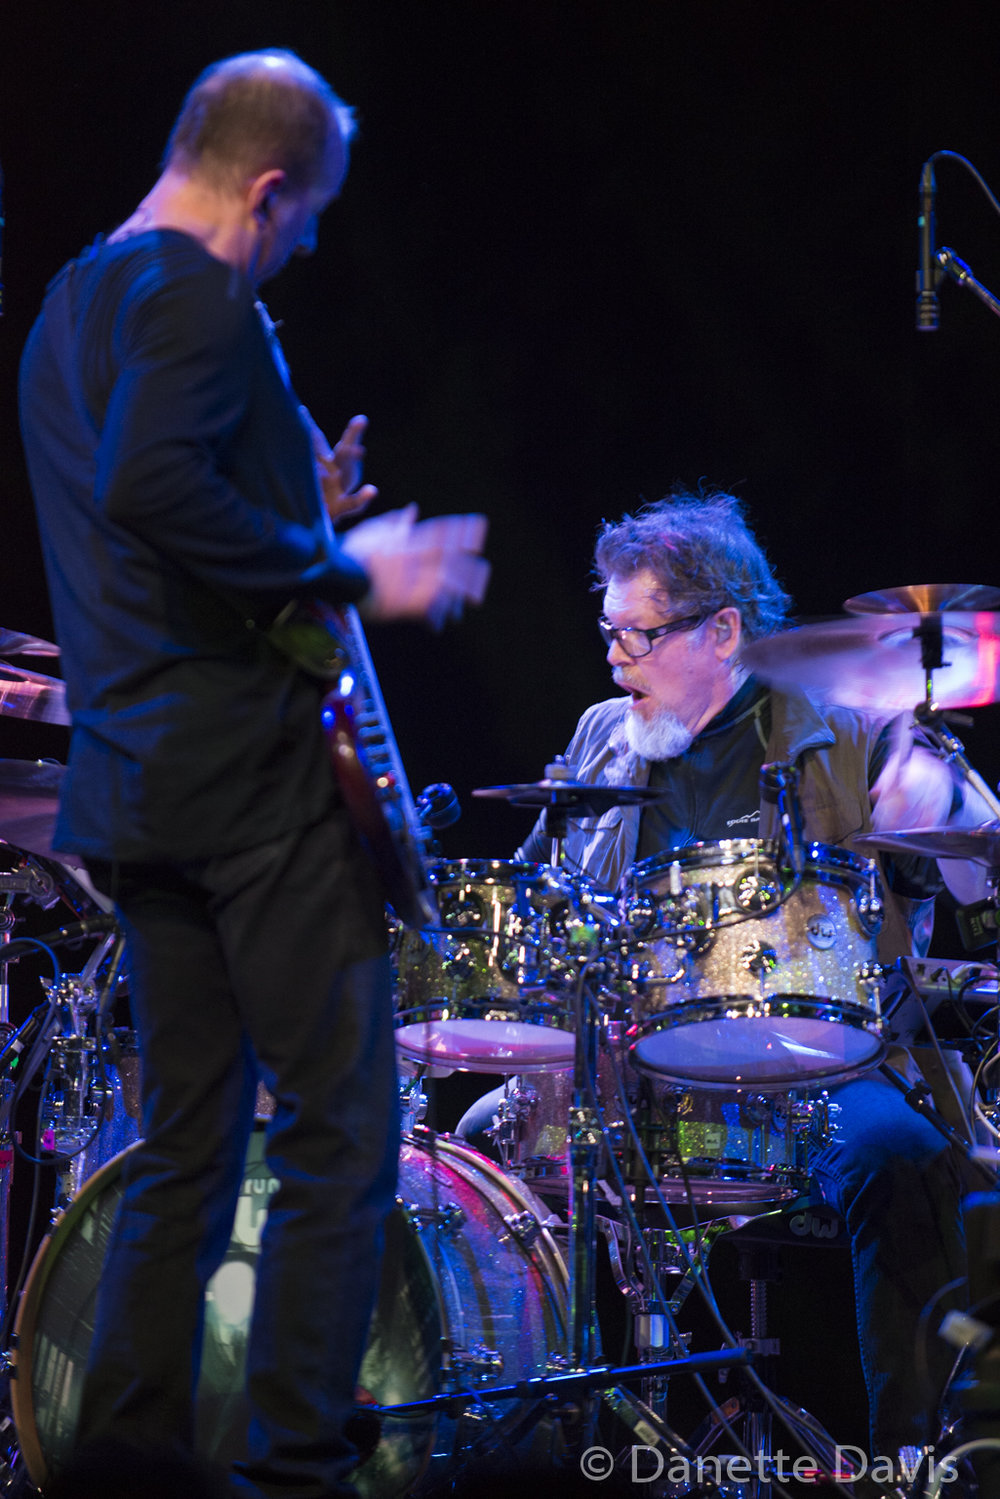 L-R: Trey Gunn and Pat Mastelotto, Stick Men,  2017 , at Triple Door